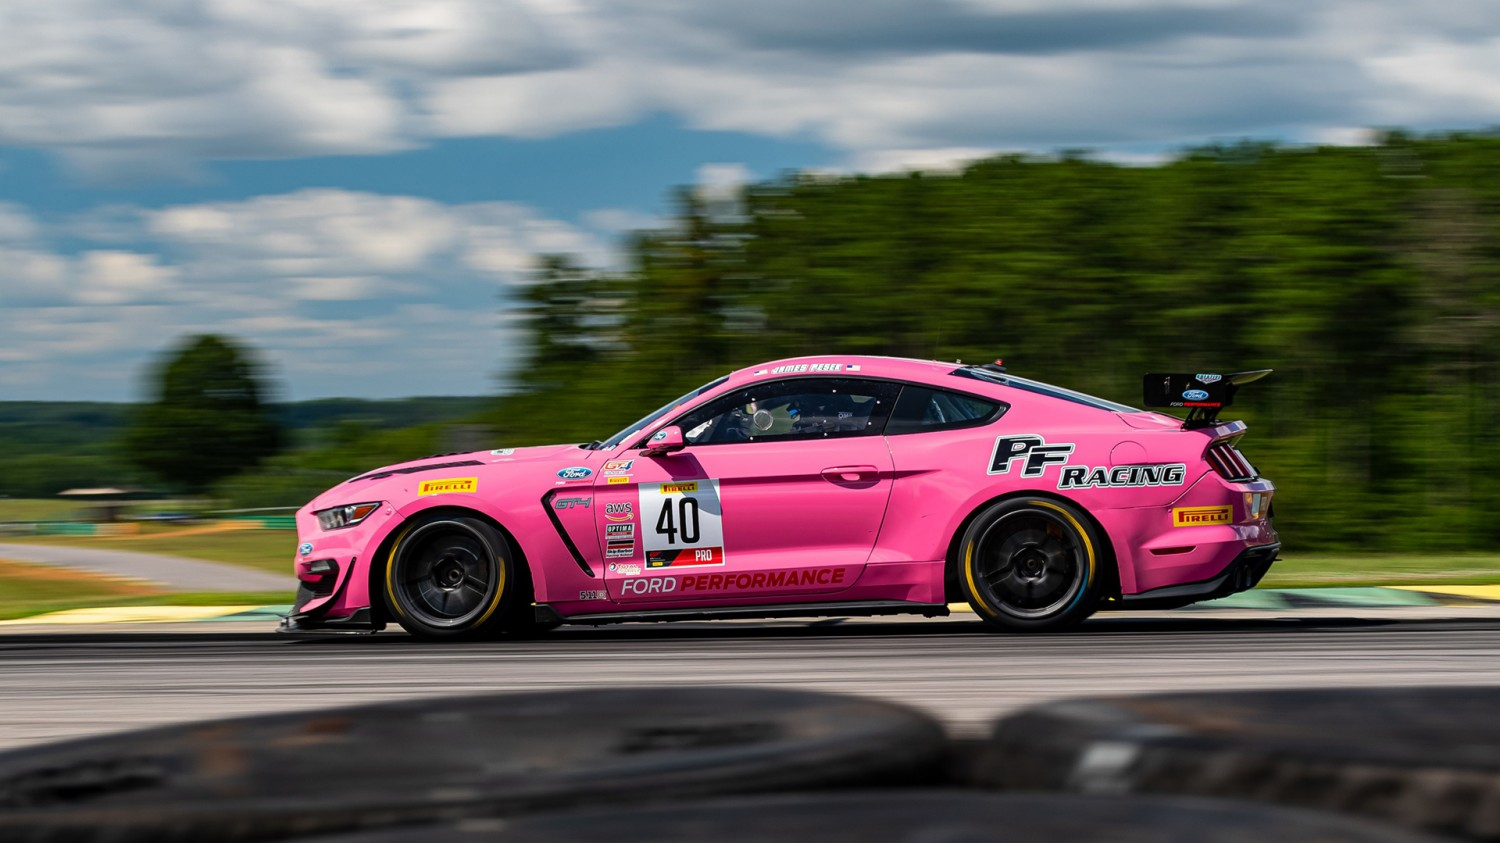 Successful Weekend Back in Action for PF Racing at VIR!